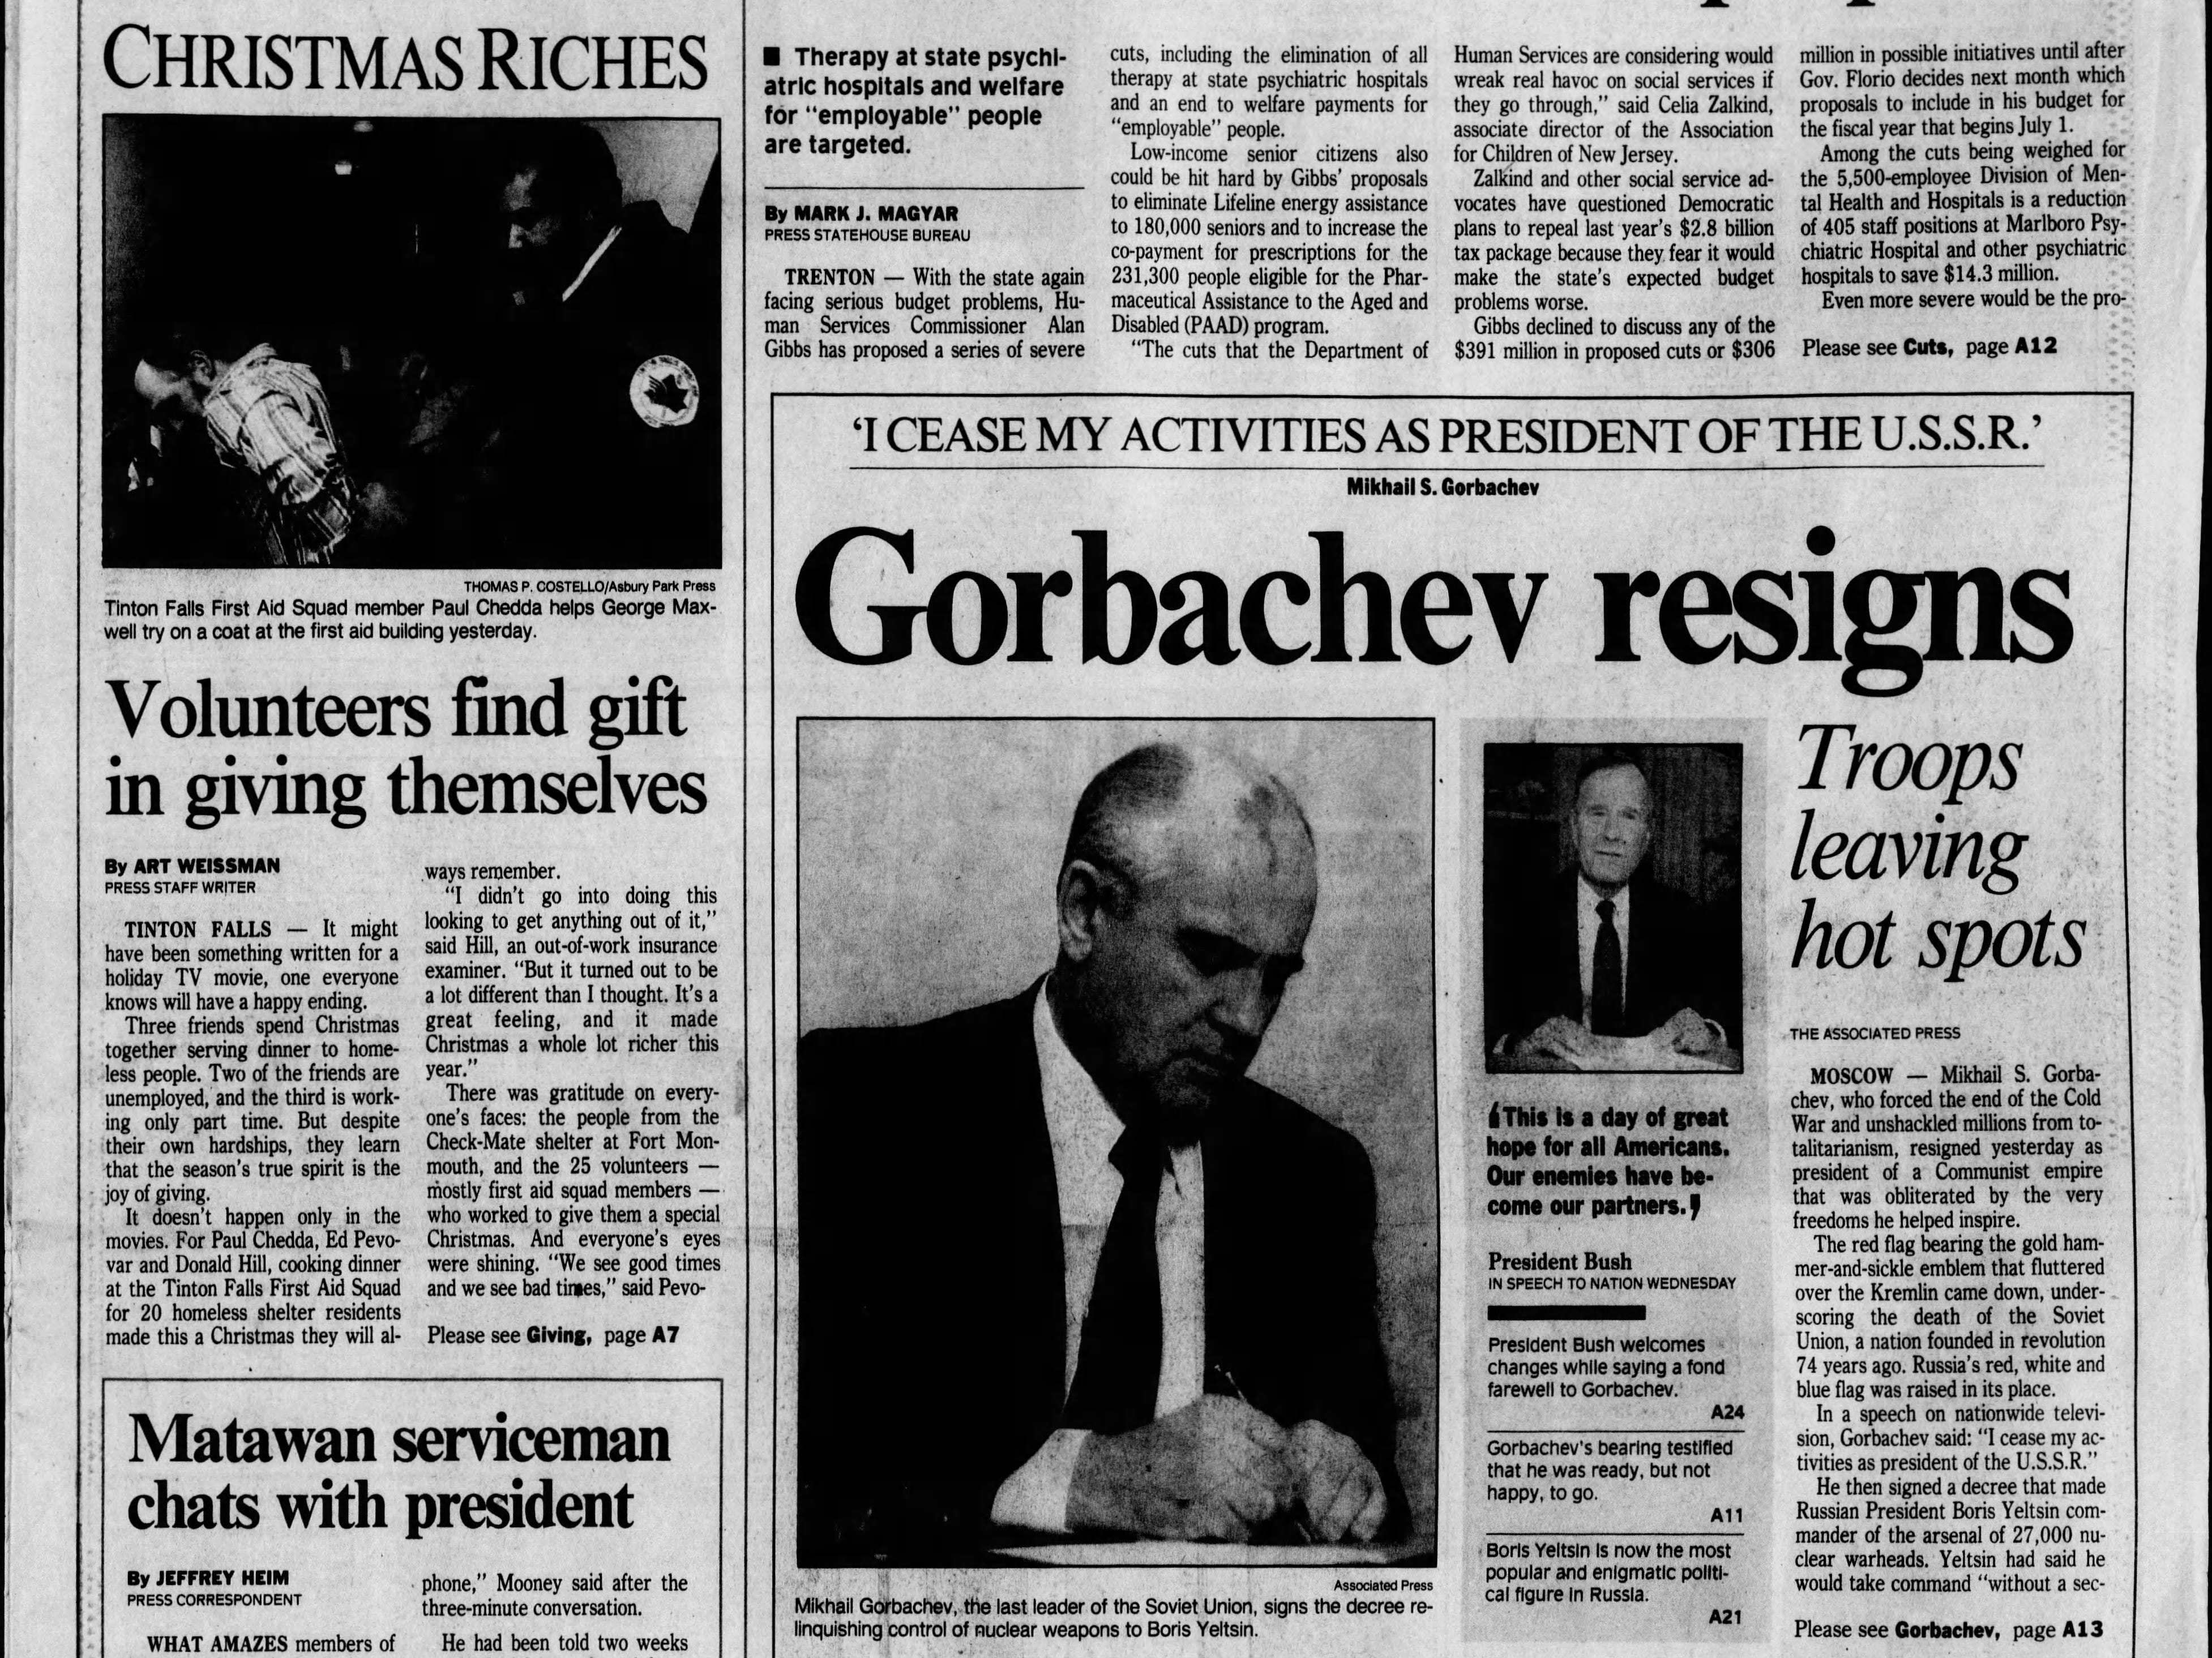 The Communist empire that was the Soviet Union for 69 years, ceases to exist on this Thursday, Dec. 26, 1991 when its last leader Mikhail Gorbachev resigns.